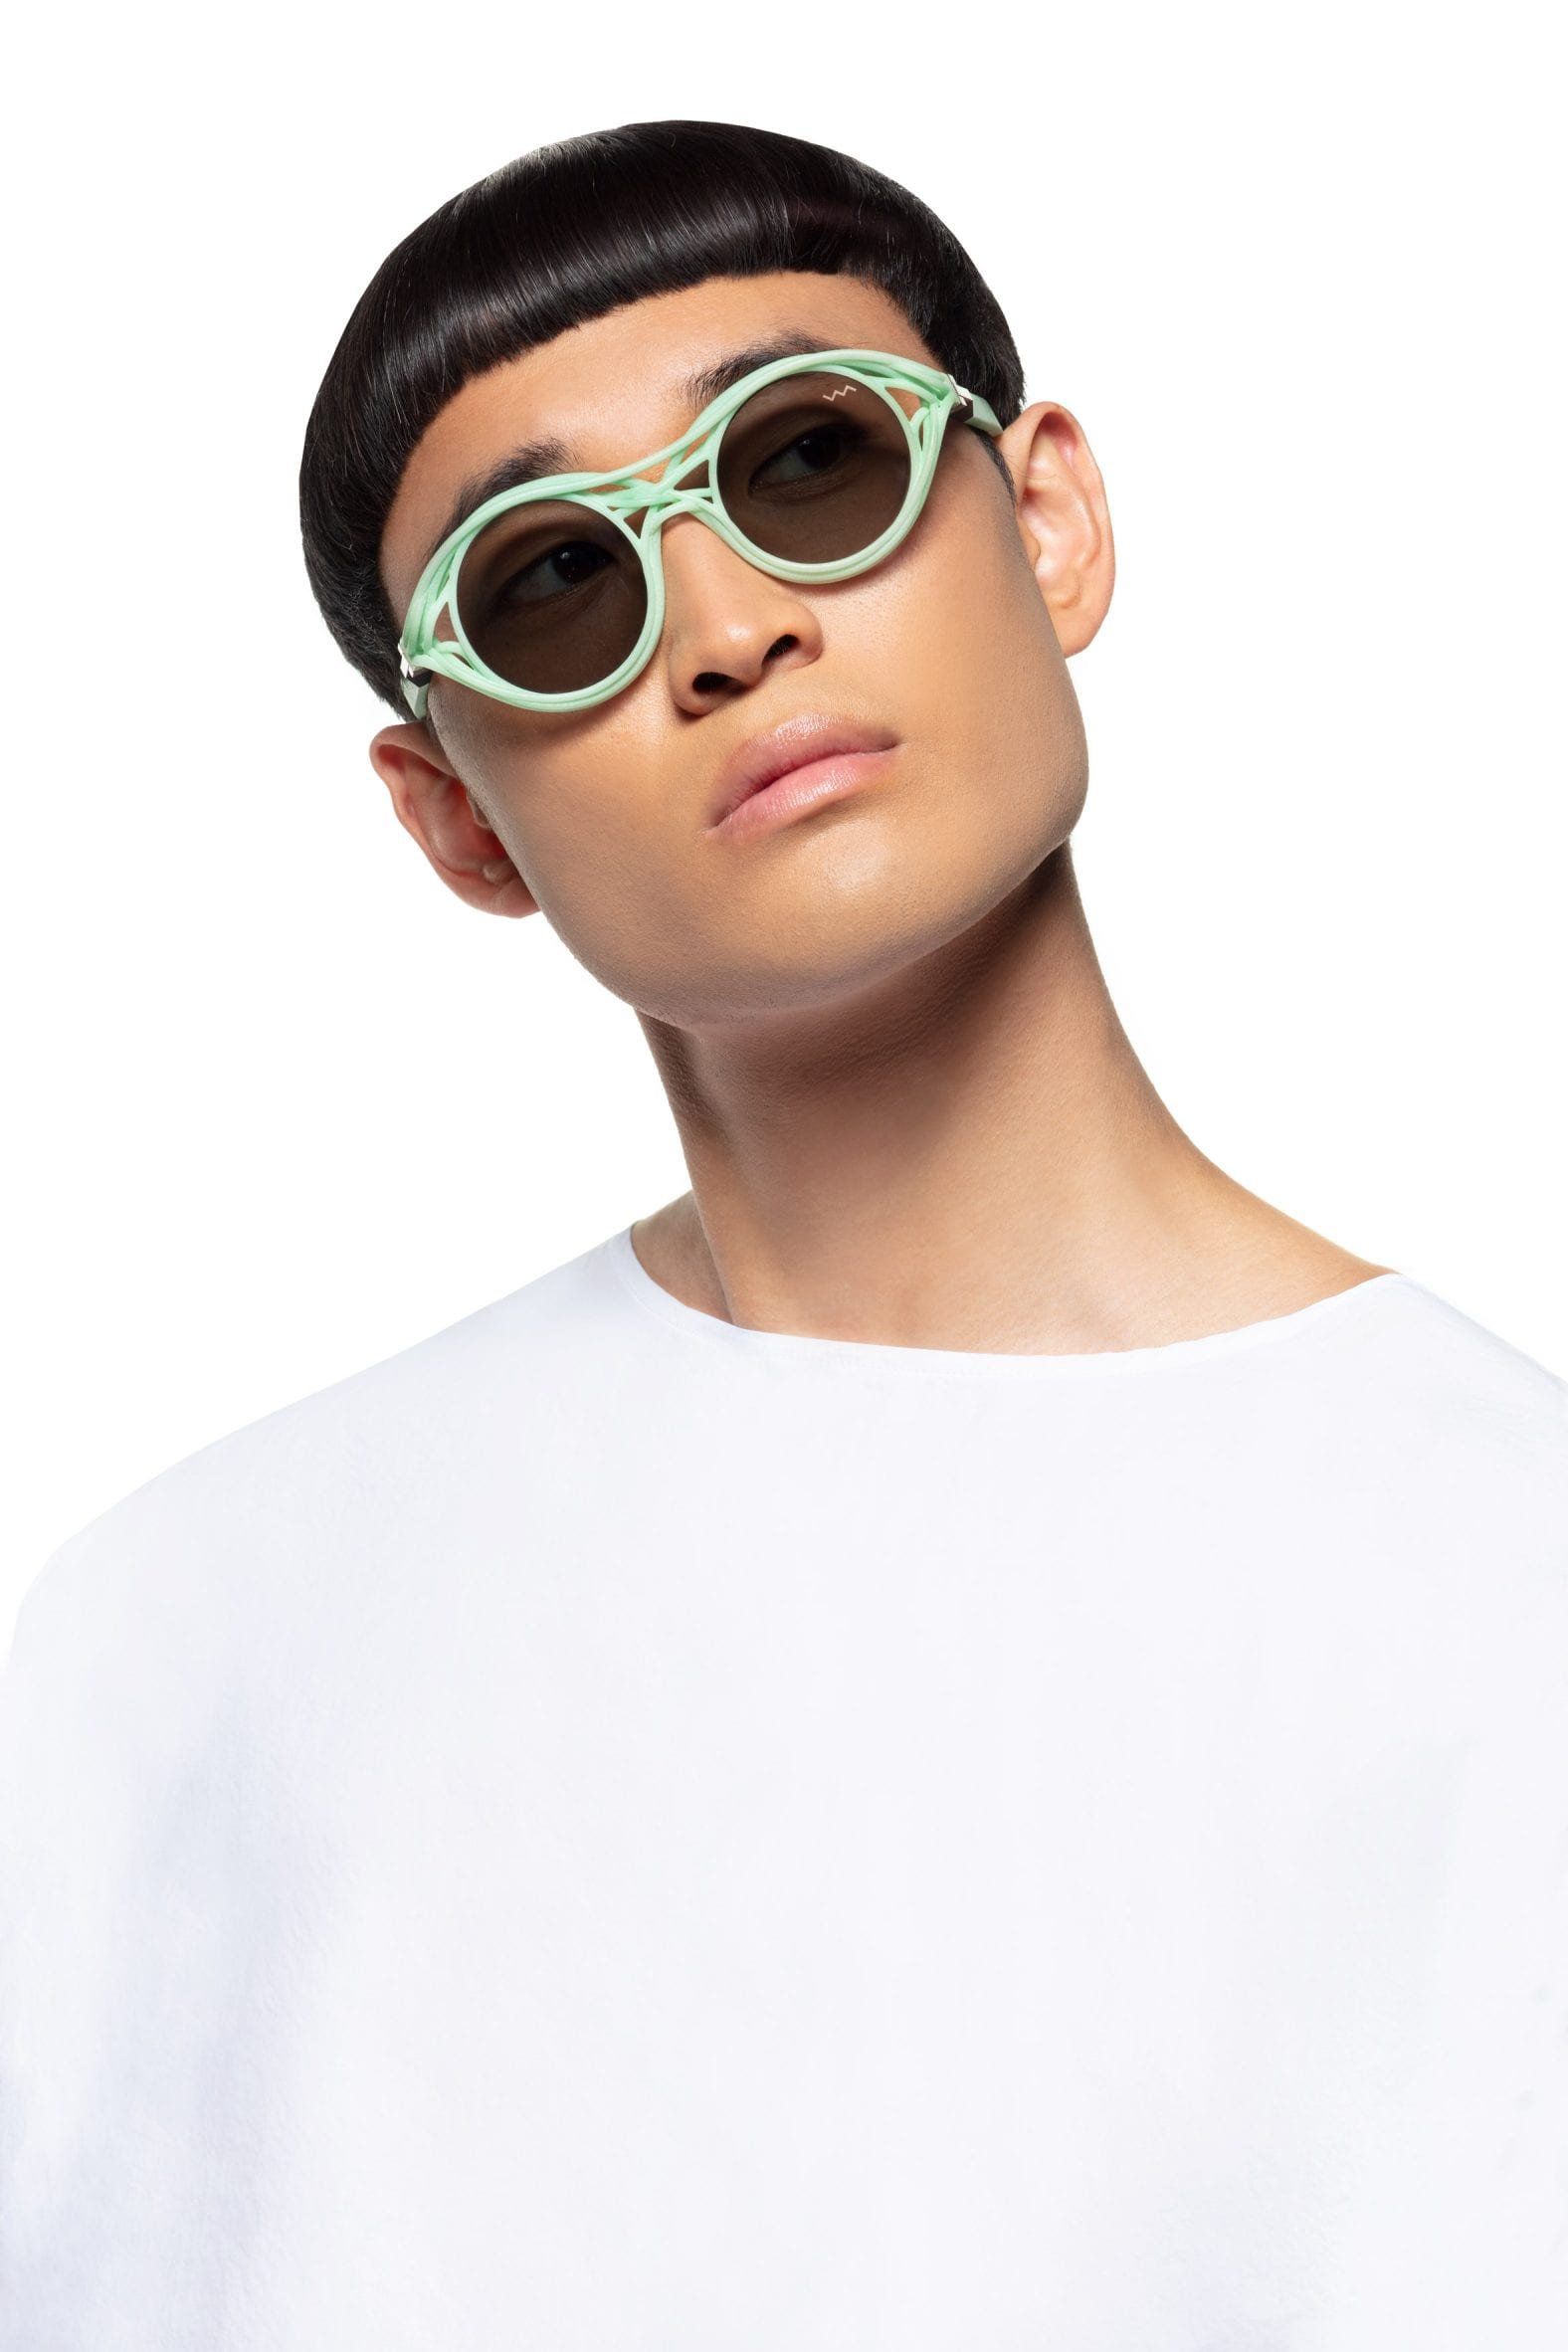 A man in a white top wears light green sunglasses